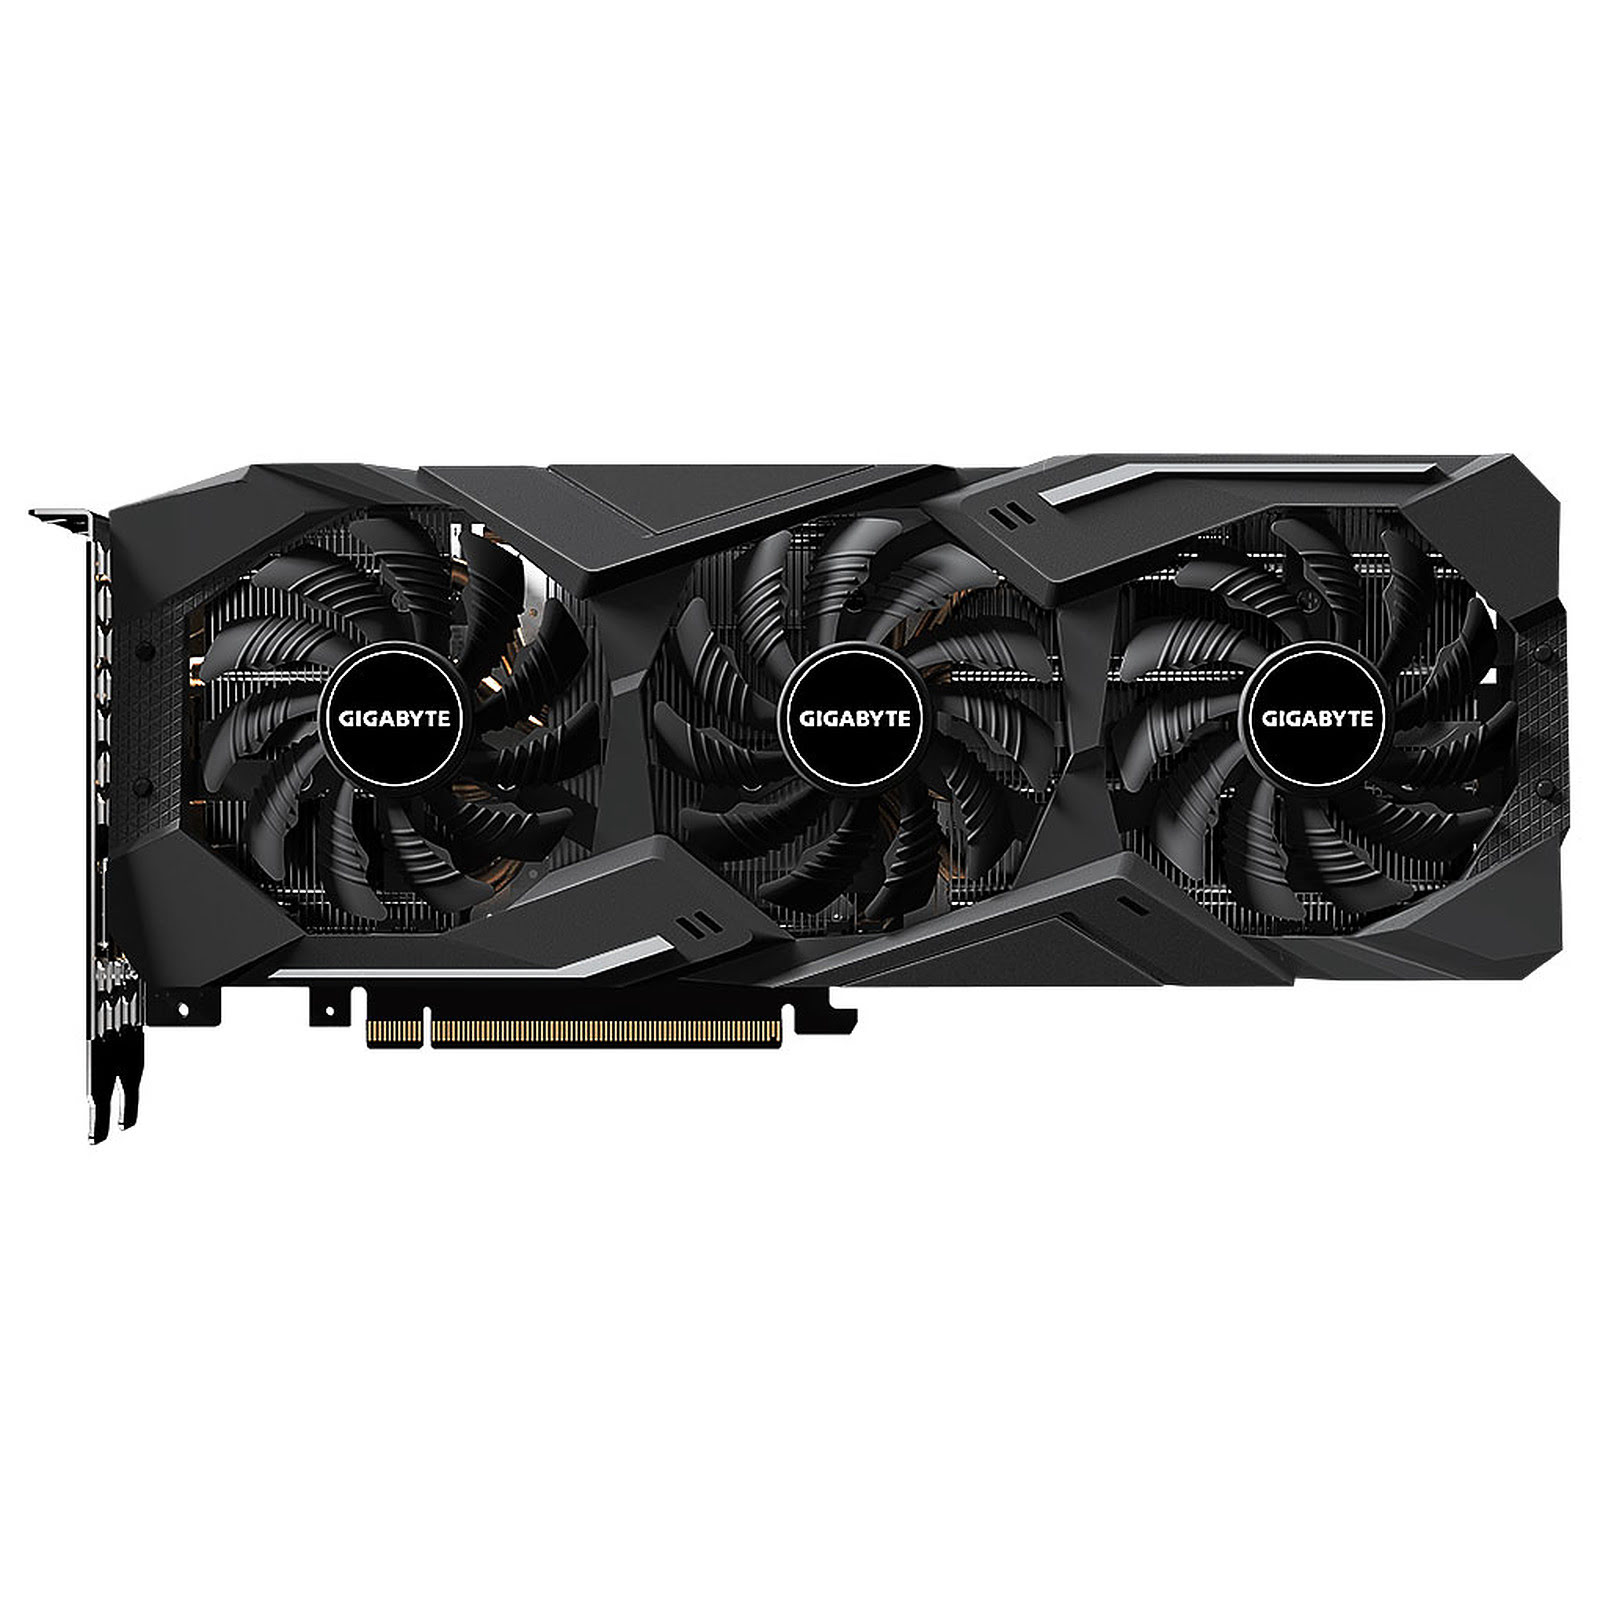 Gigabyte GeForce RTX 2070 SUPER WINDFORCE OC (GVN207SWOC-00-G) - Achat / Vente Carte graphique sur Cybertek.fr - 4